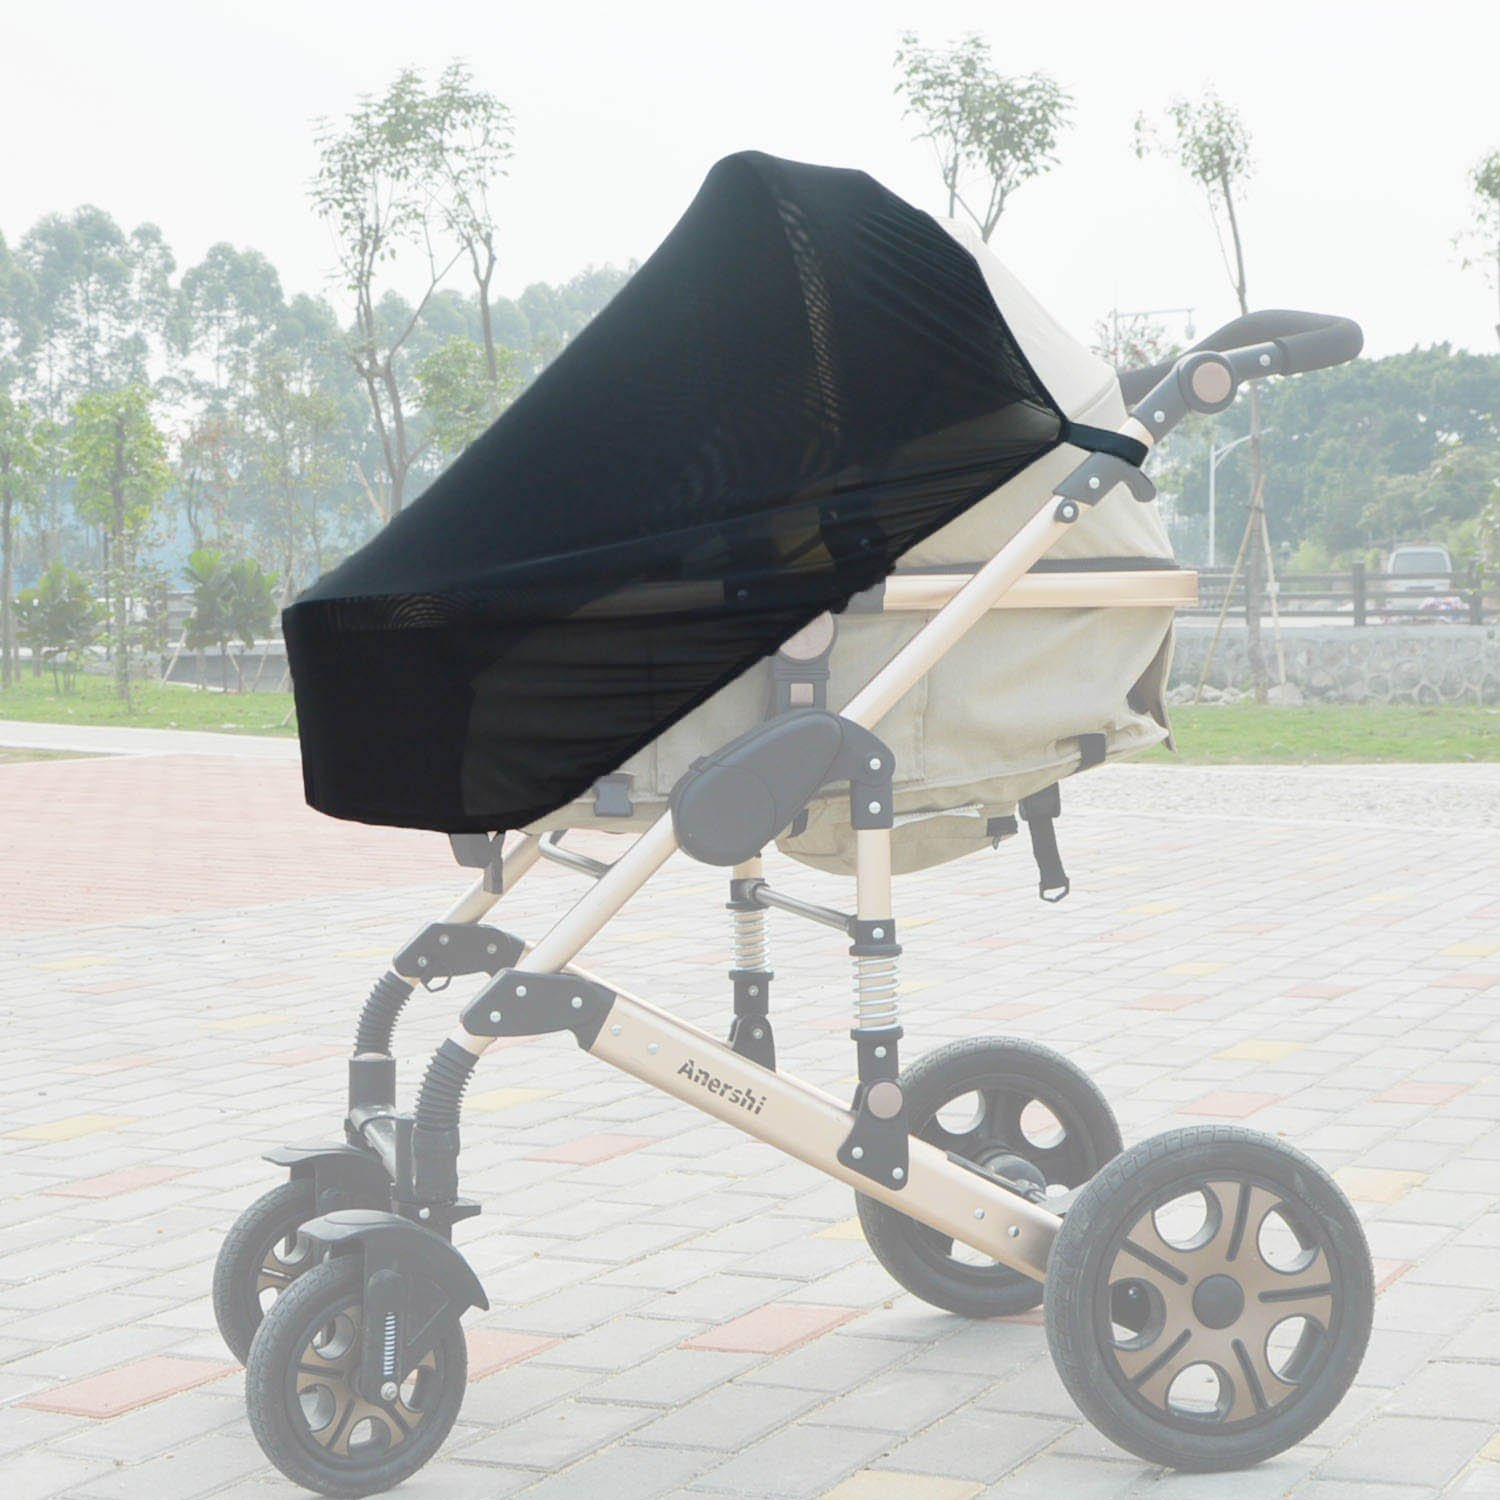 Universal Pram & Carrycot Sunshade for Infantastic Baby Child Pushchair Pram / Stroller 2in1 with Carry Cot Zhiyi STROLLER-SHADE-INFANTASTIC